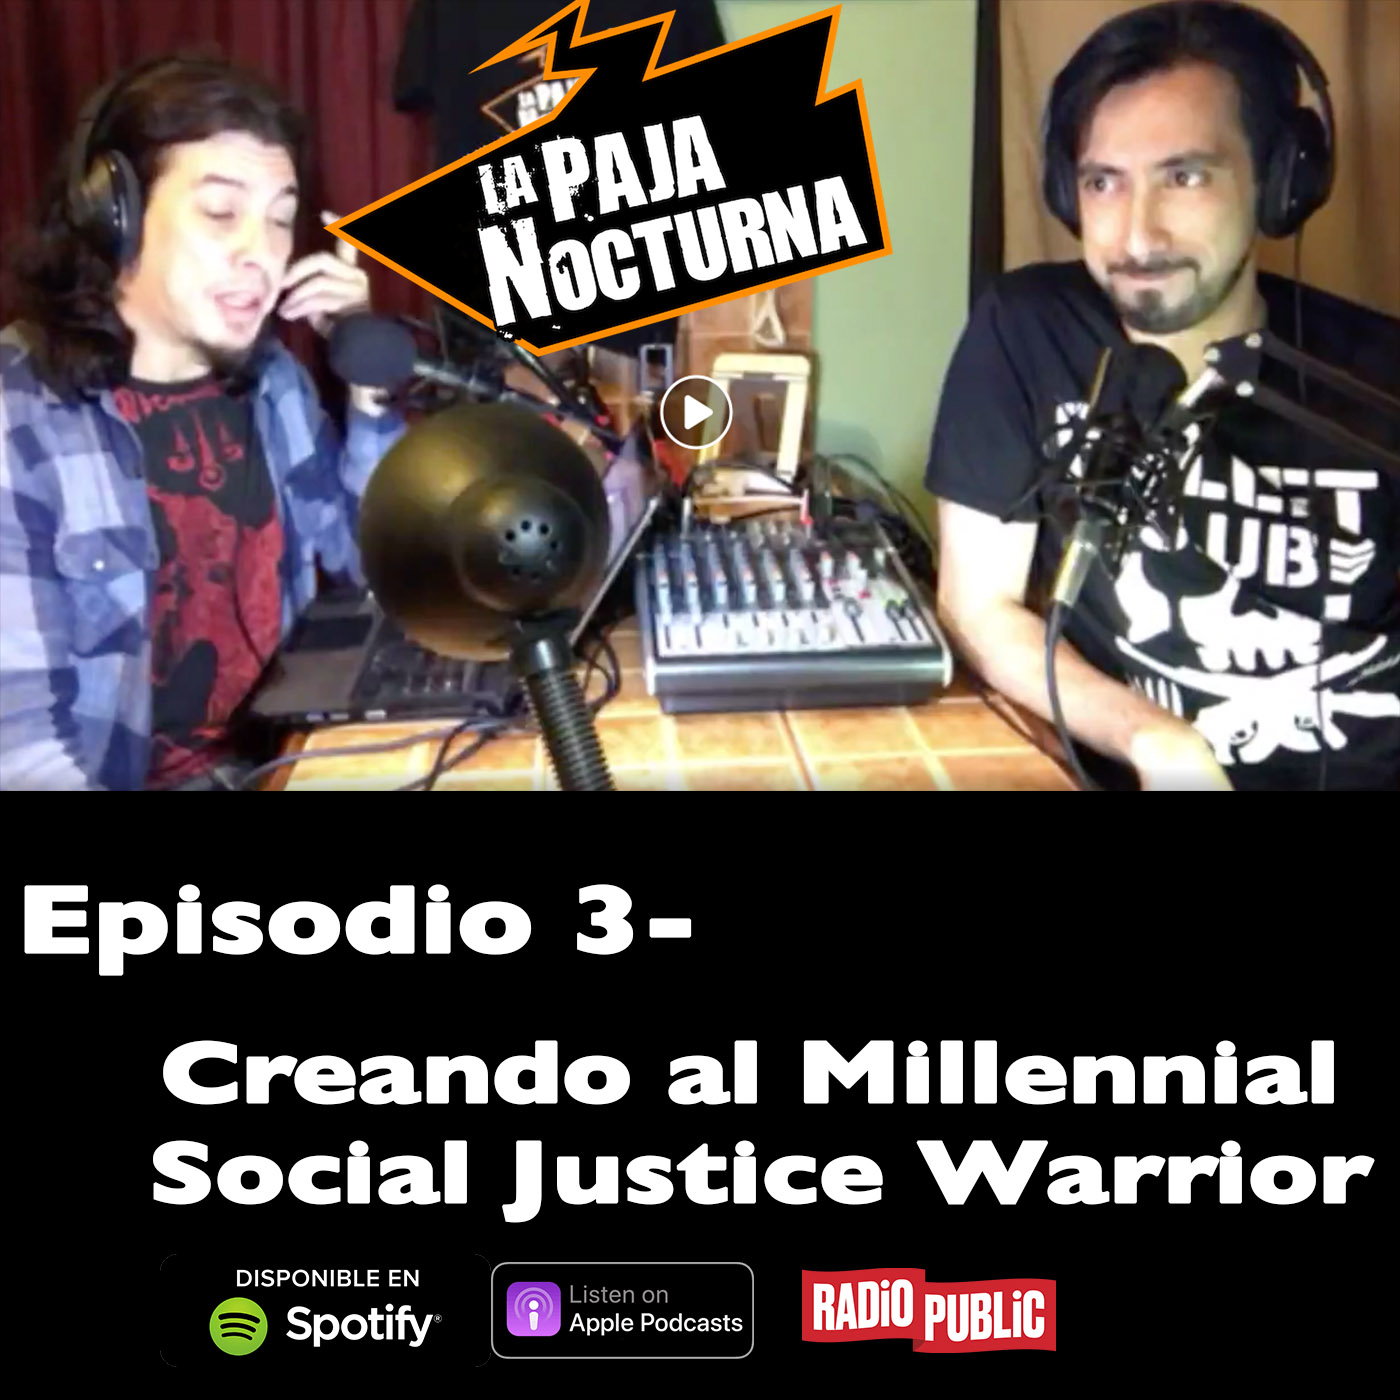 La Paja nocturna Podcast Episodio 3